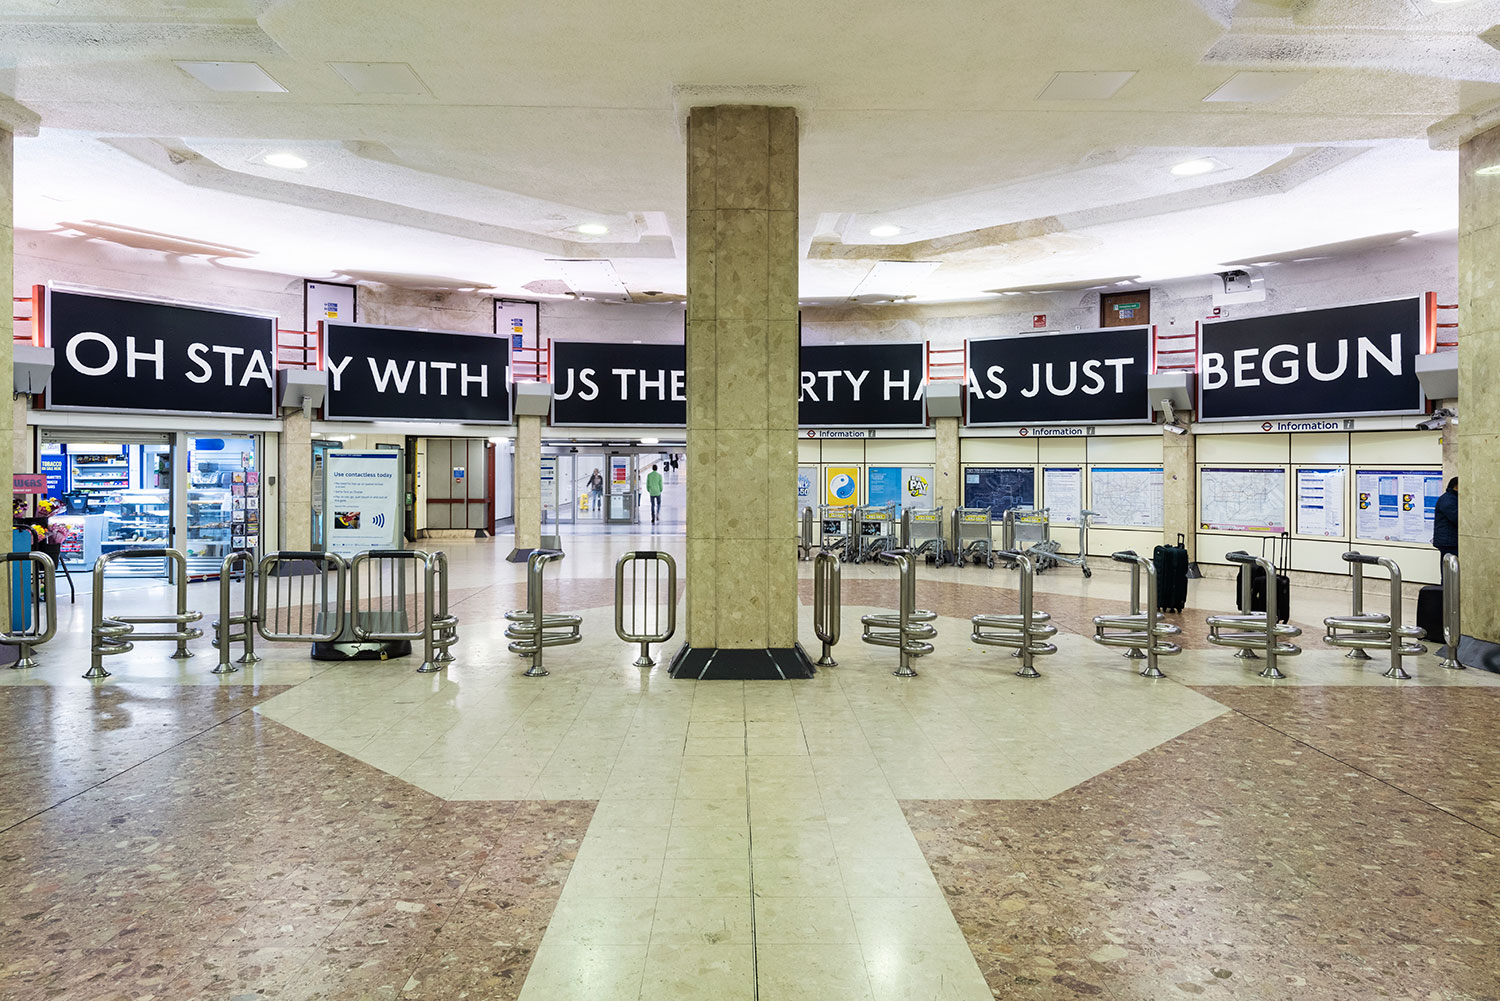 Laure Prouvost, You Are Deeper Than What You Think, 2019 at Heathrow Terminal 4